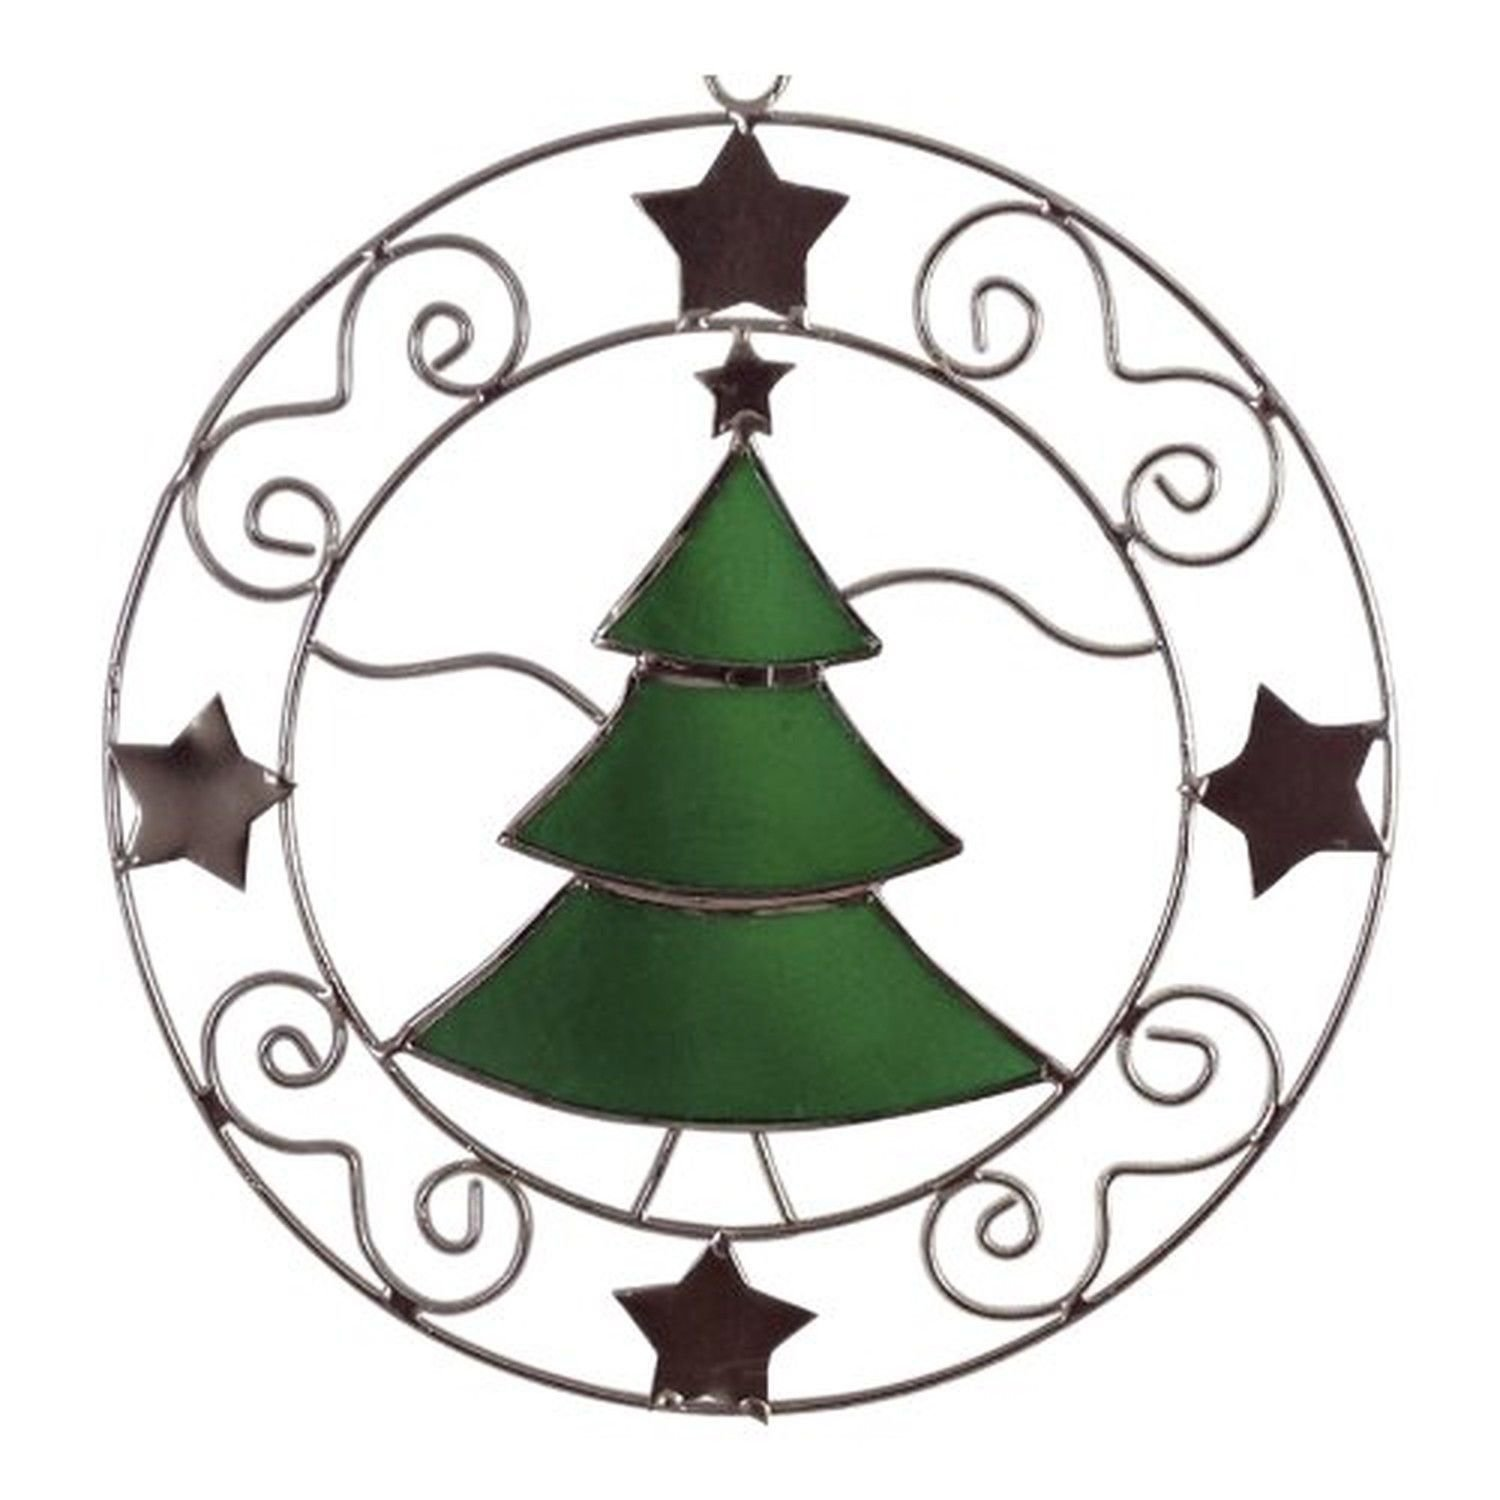 Green Christmas Tree n Star Sun catcher Holiday Ornament Silver Metal Decor